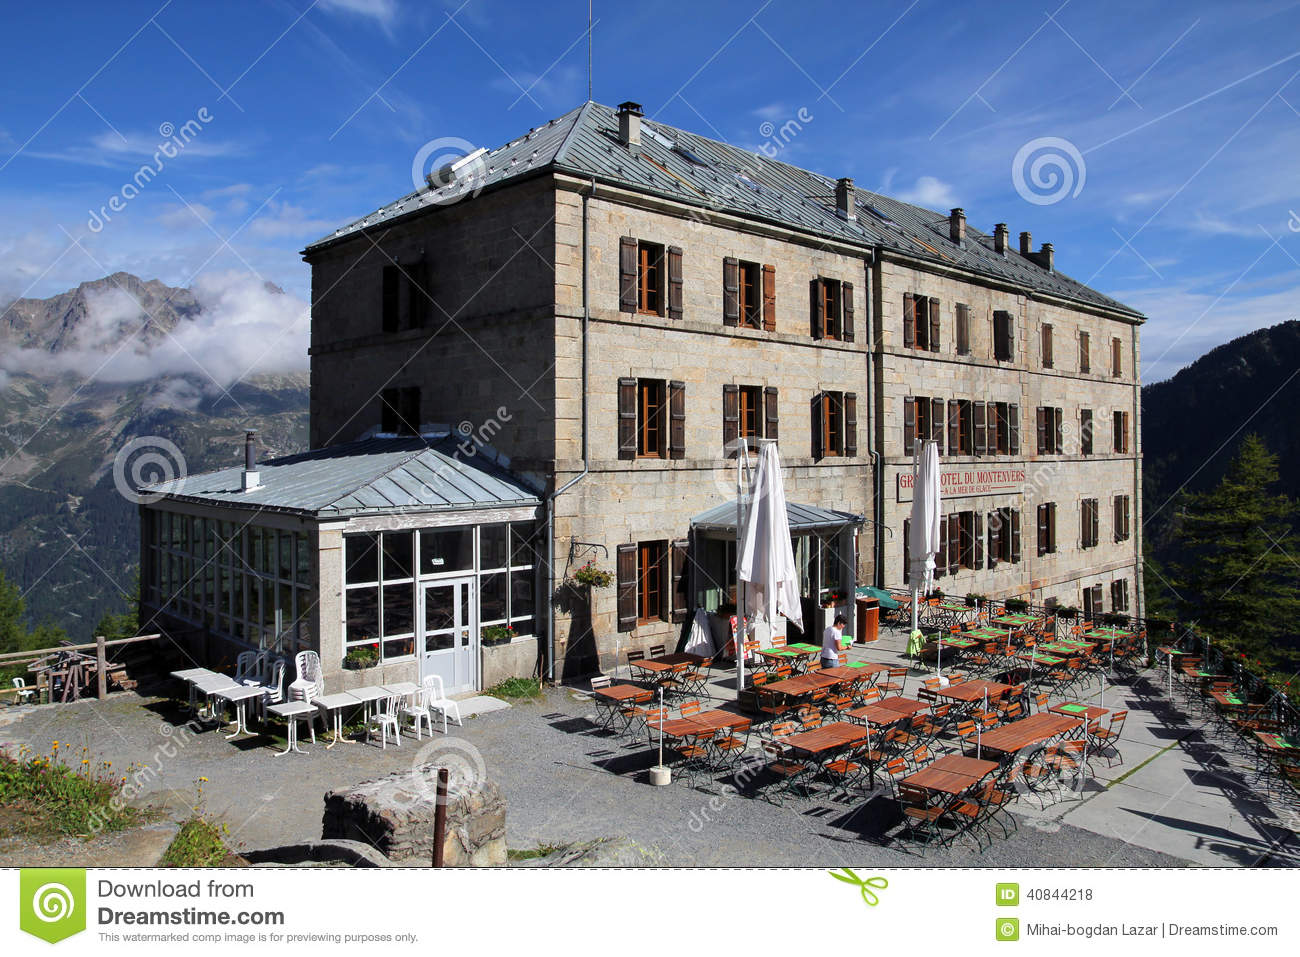 Hotel Montenvers Grand Hotel De Montenvers France Editorial Stock Photo Image Of